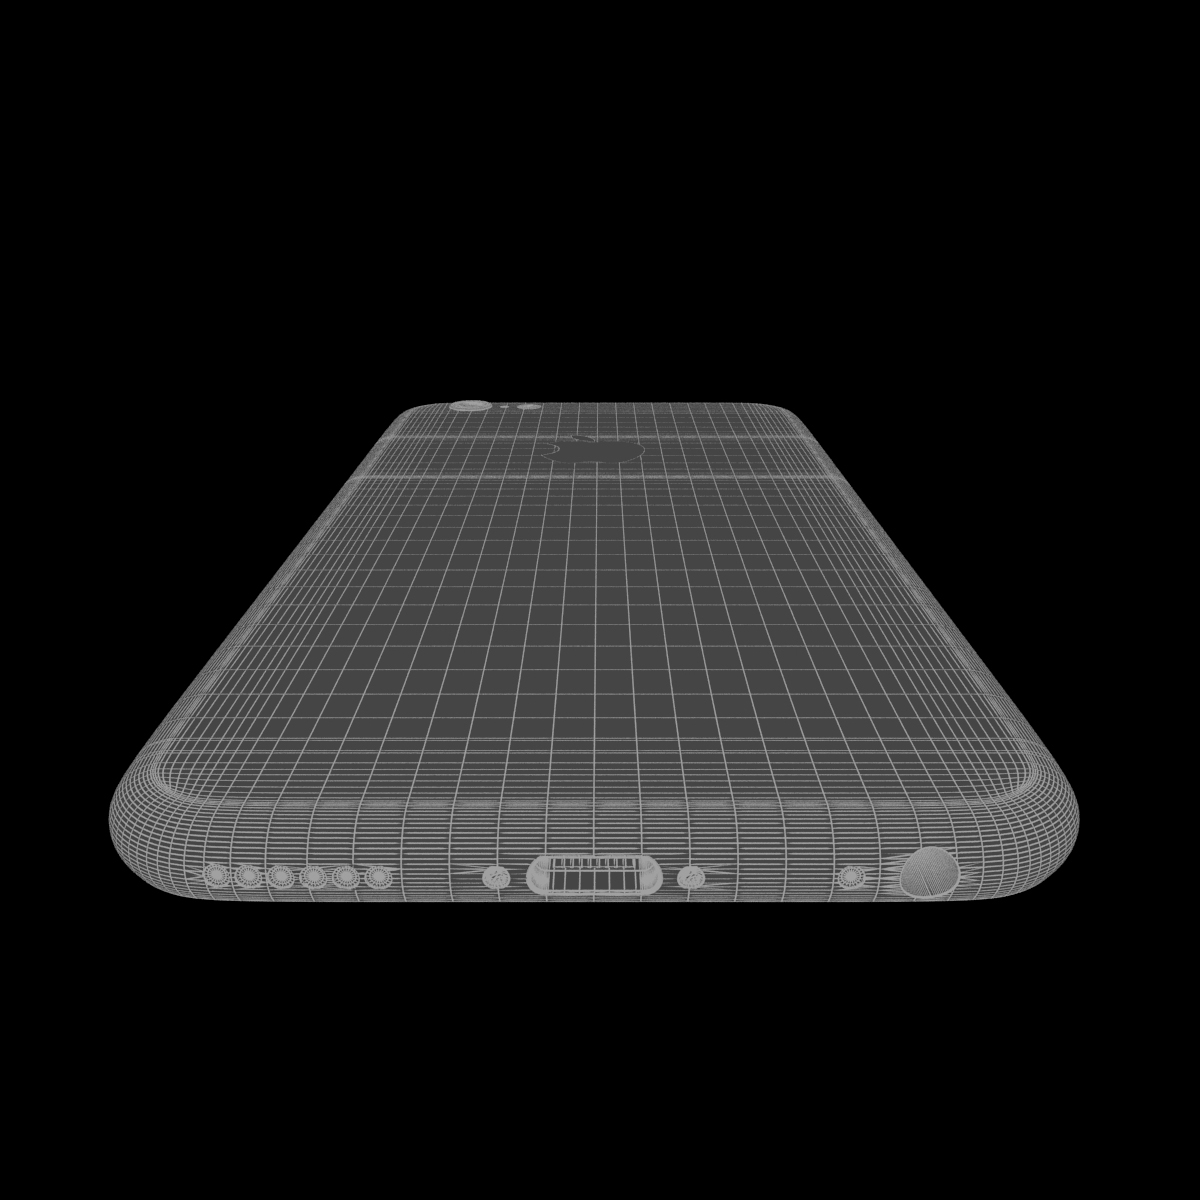 jabuka iphone 6s 3d model max fbx ma mb tekstura obj 278464